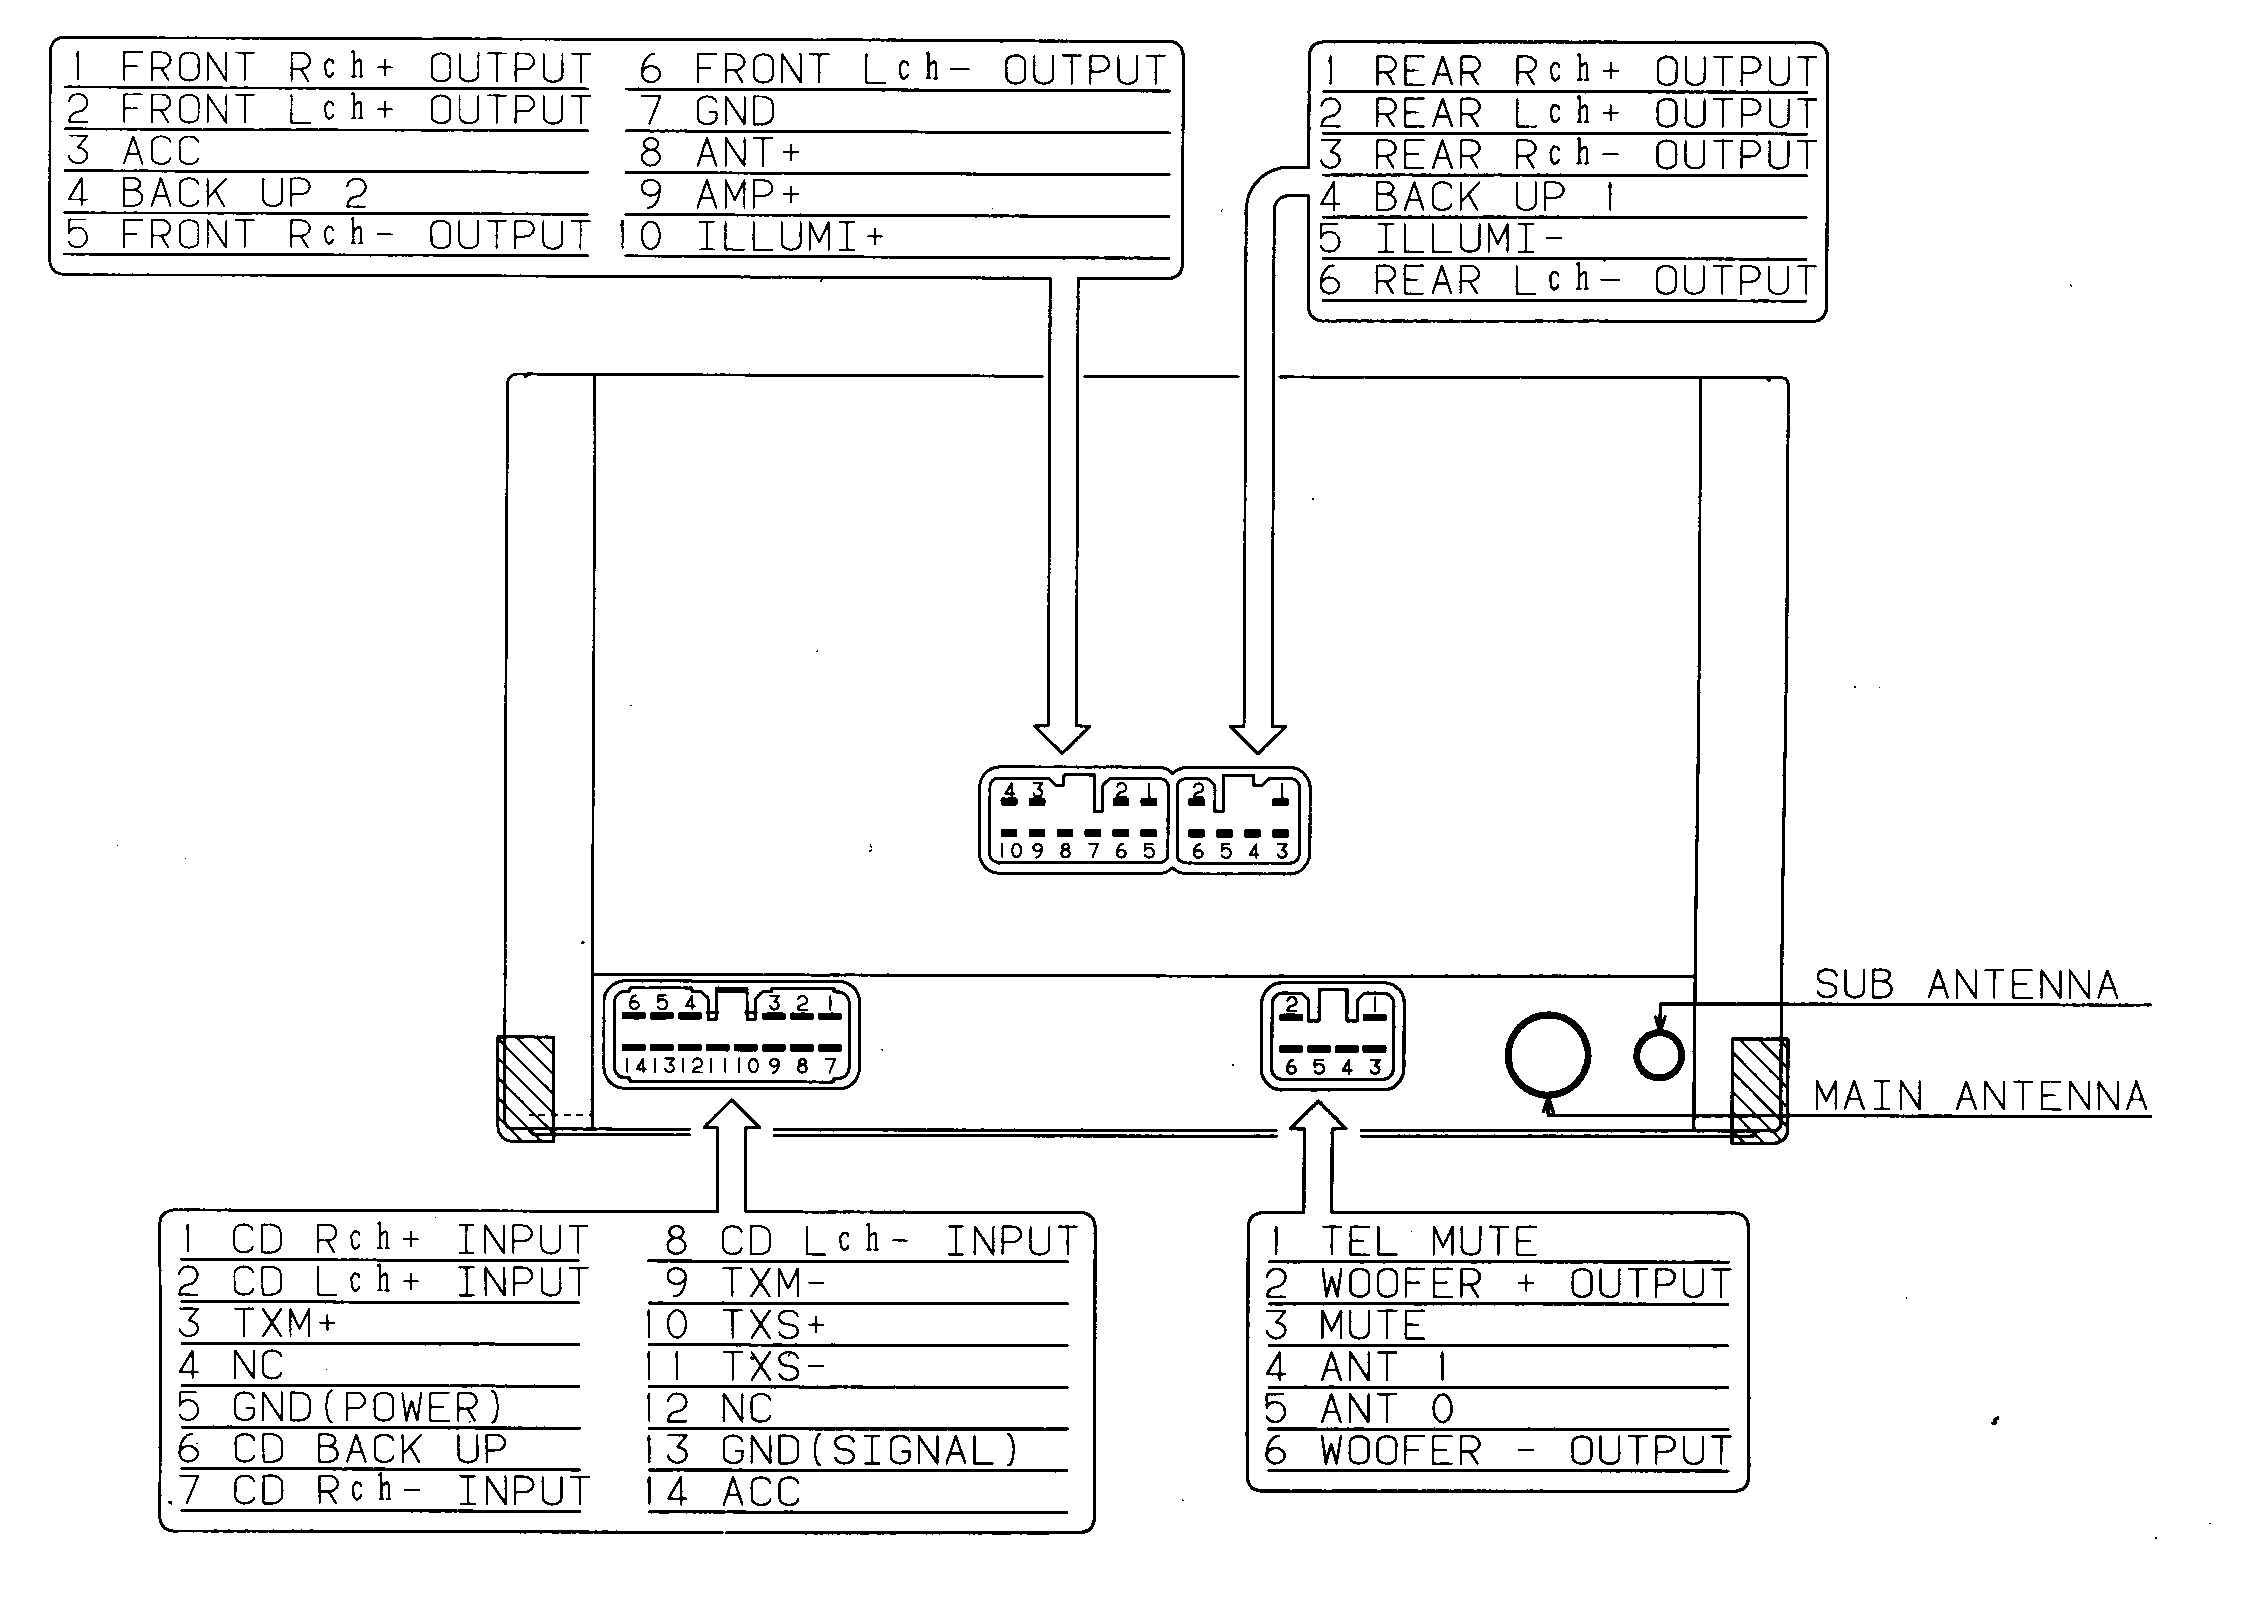 Lexus car stereo wiring diagram harness pinout connector wire lexus car radio stereo audio wiring diagram autoradio connector lexus rx330 radio wiring diagram at panicattacktreatment.co